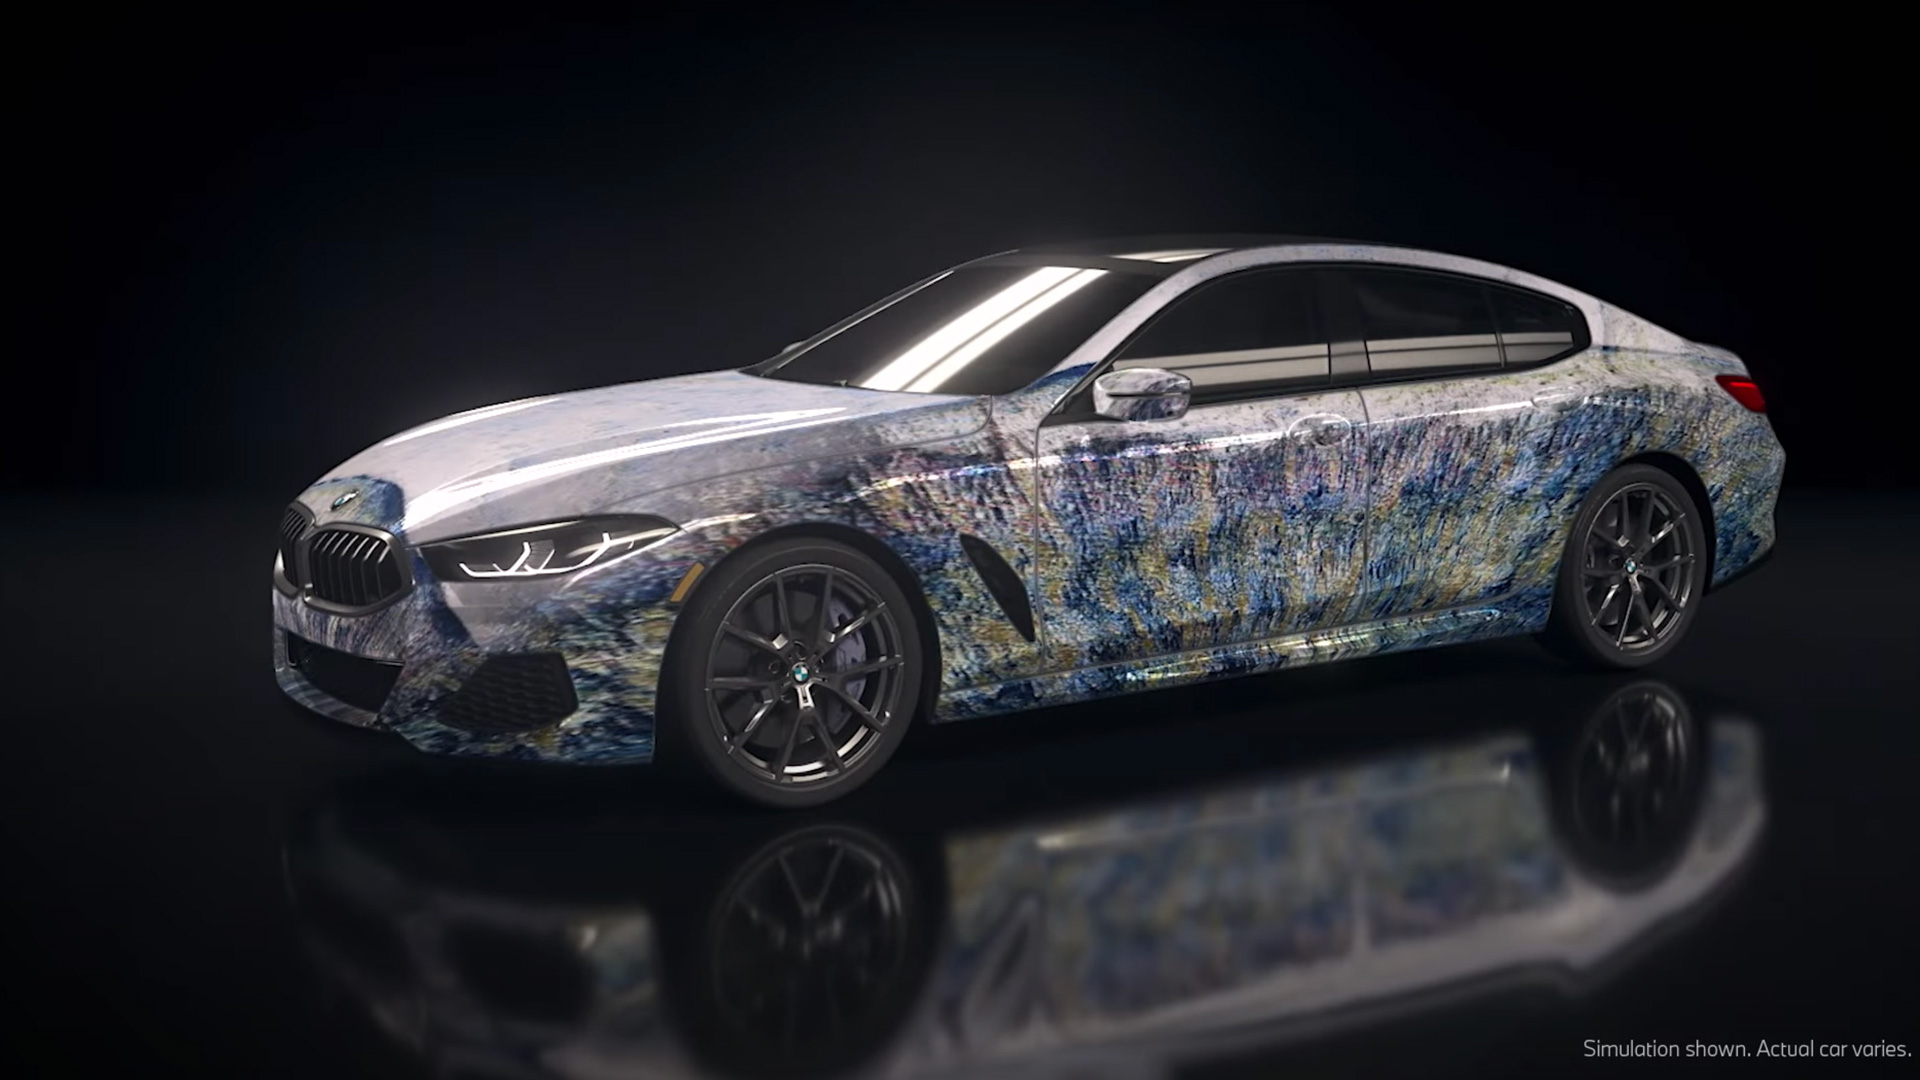 BMW created an generative algorithm to project art onto its 8 Series Gran Coupe line.